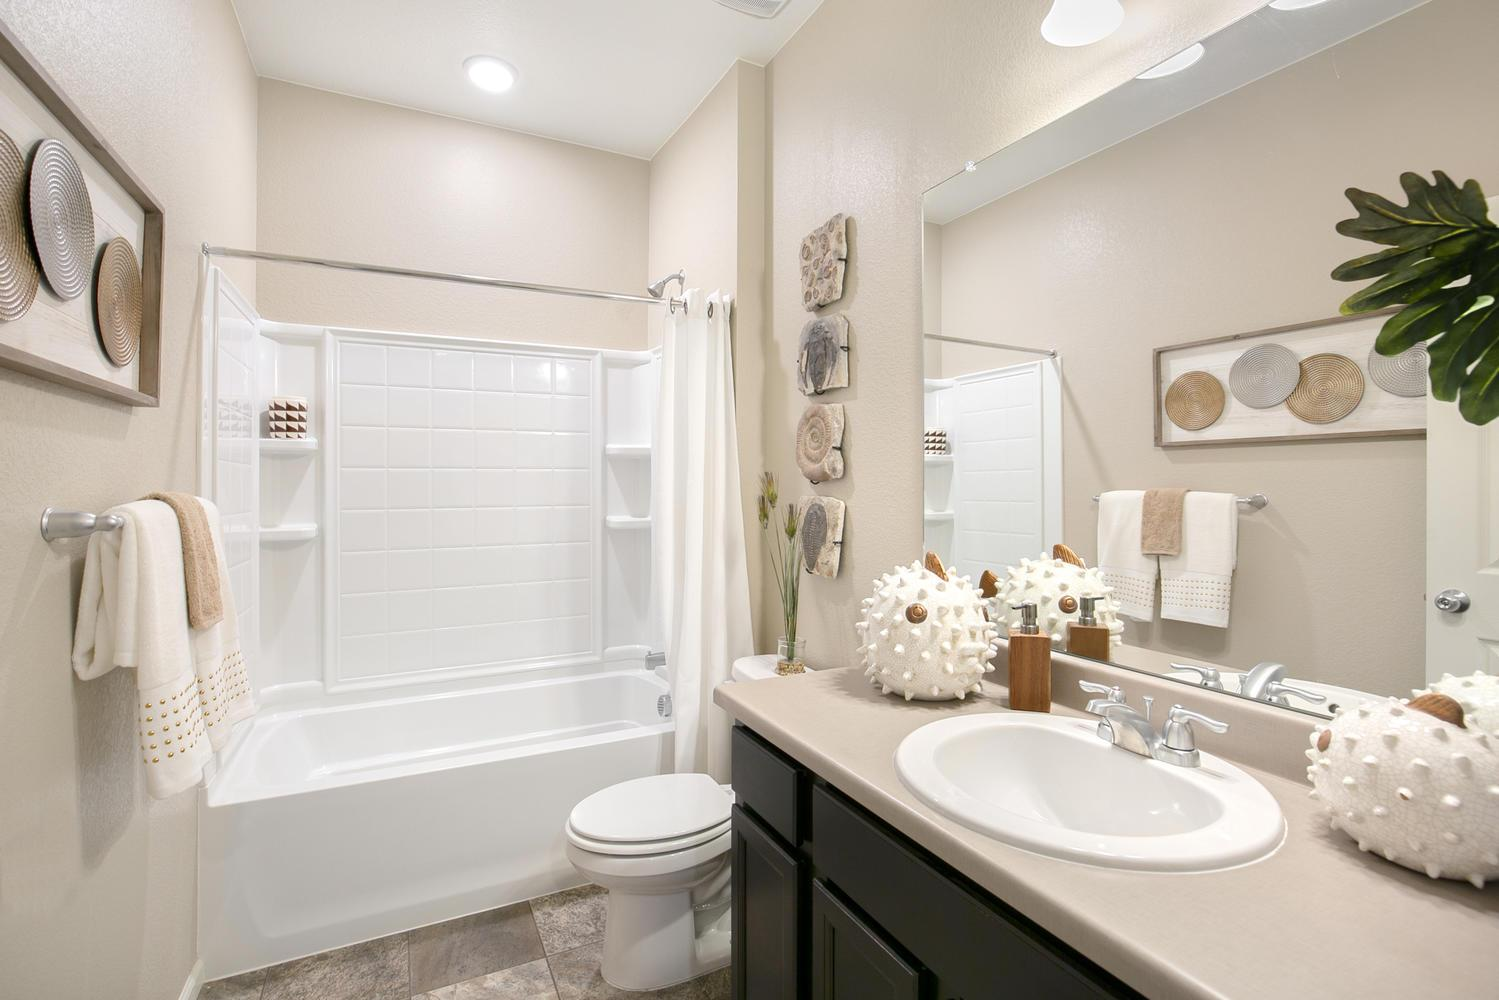 Bathroom featured in the NEUVILLE By D.R. Horton in Boulder-Longmont, CO